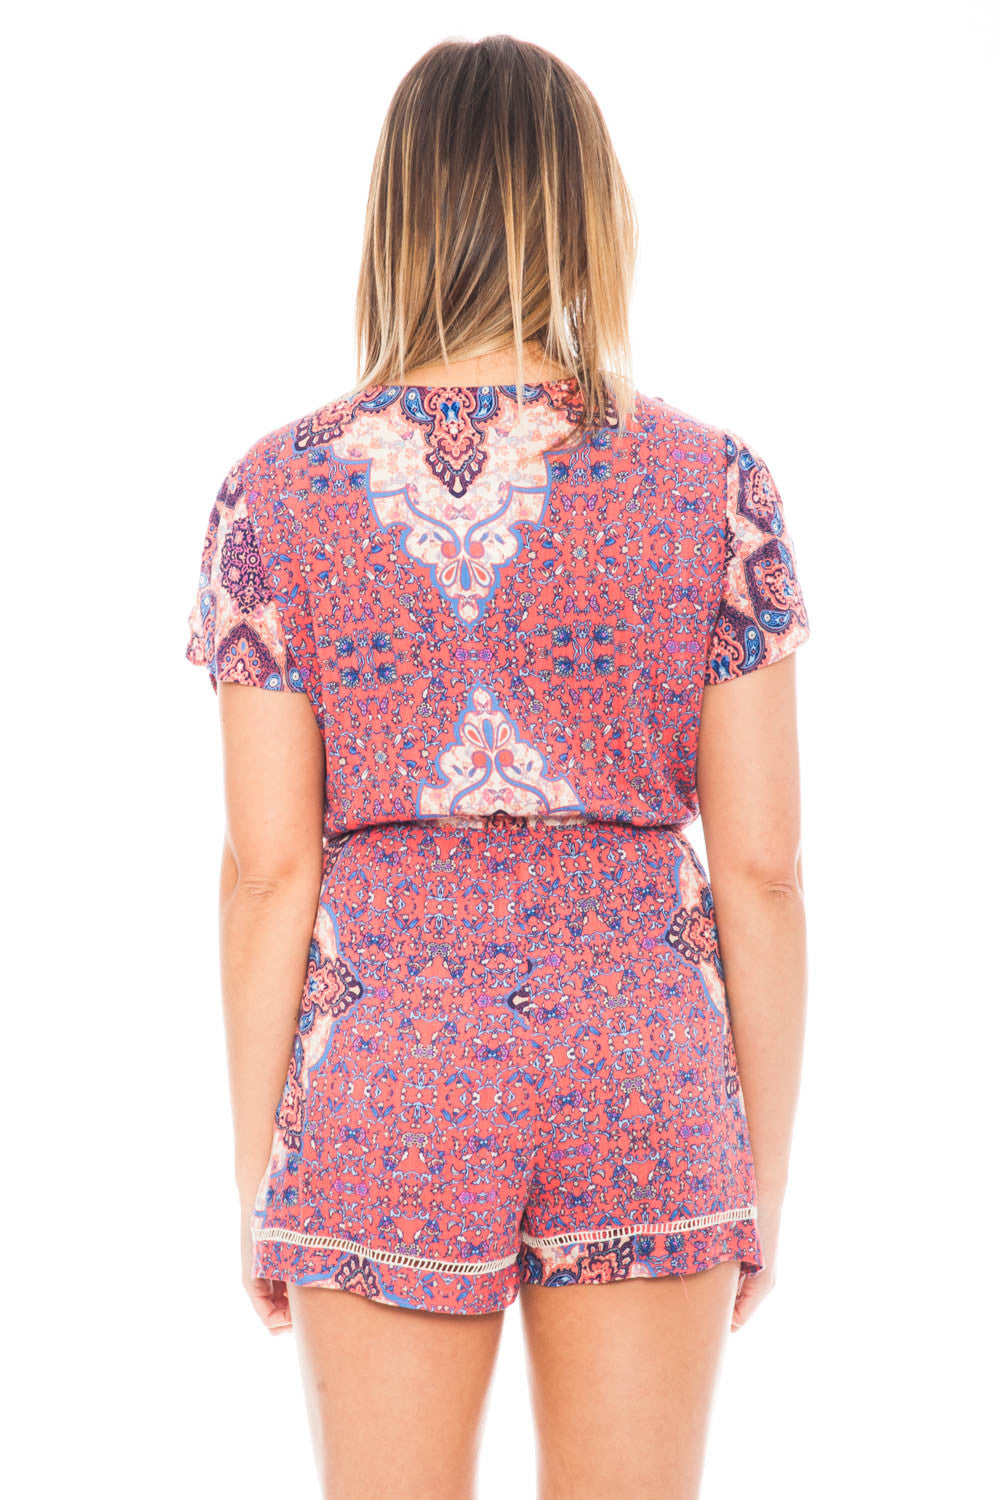 Romper - V-neck Printed Romper with an Elastic Waist by Everly